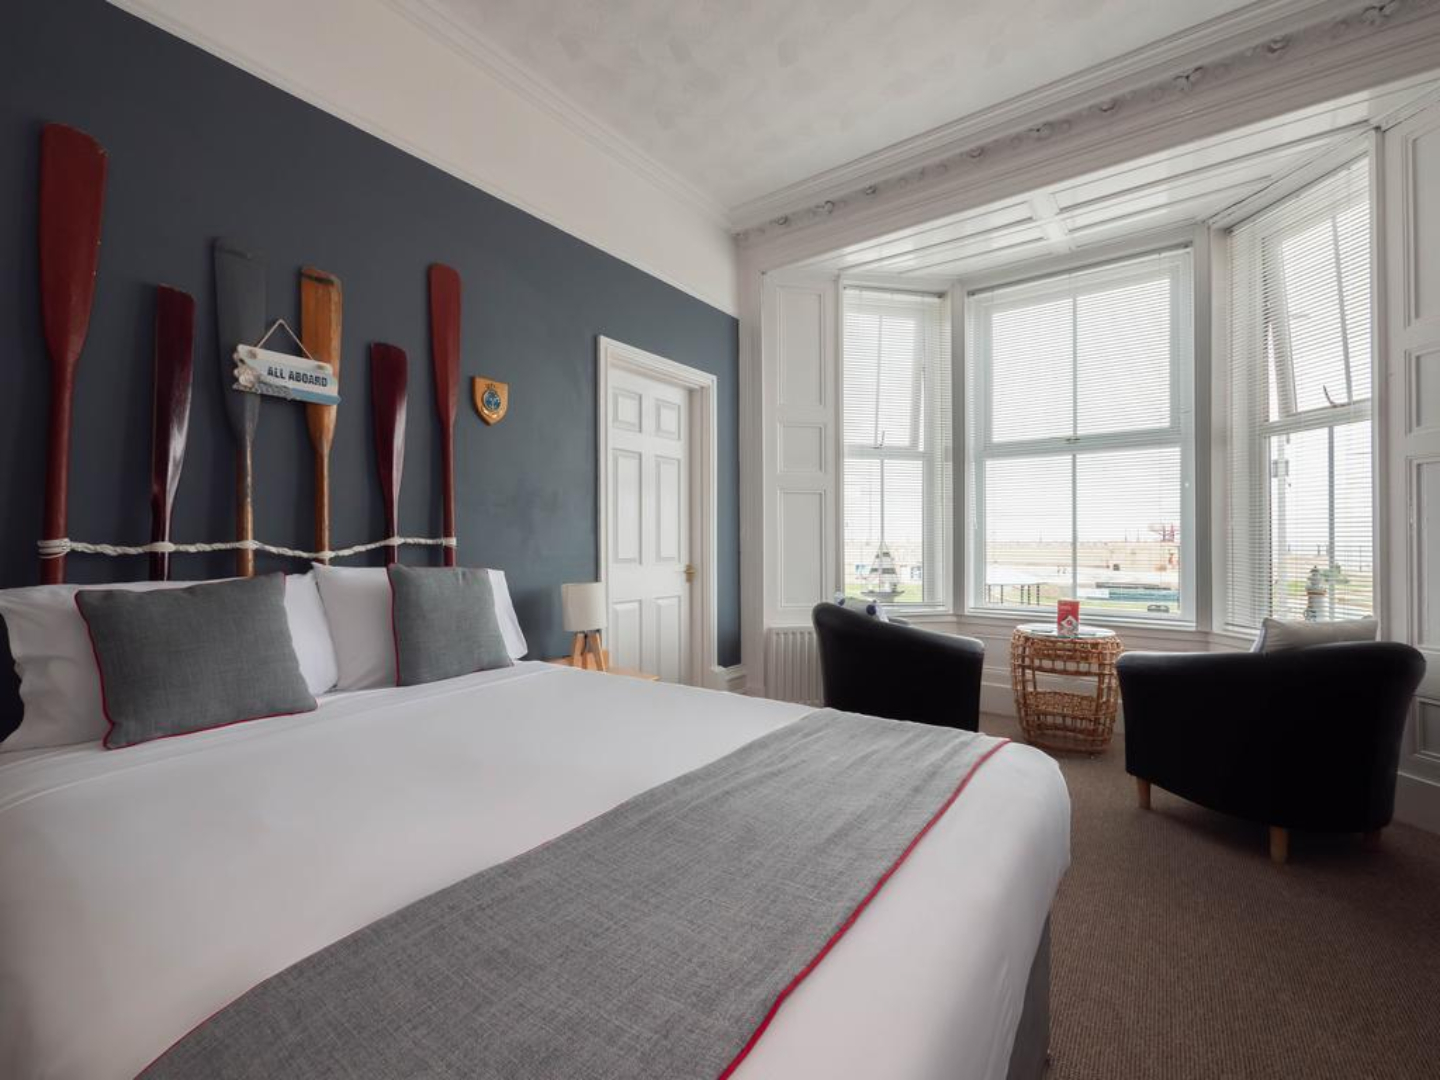 A hotel room with a bed and a large window at The Pier Hotel.